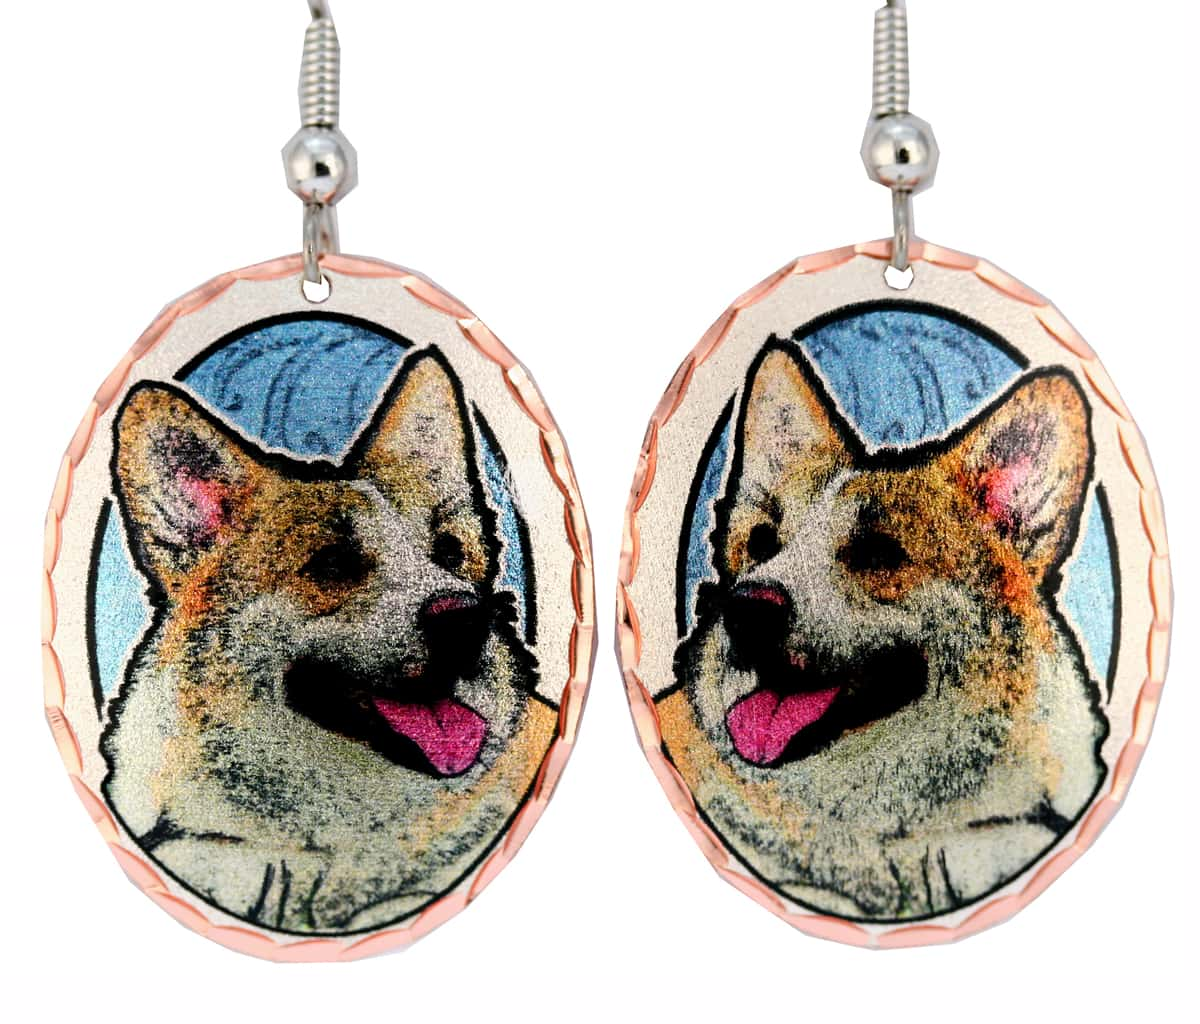 Cardigan Welsh Corgis Earrings, Dog Jewelry